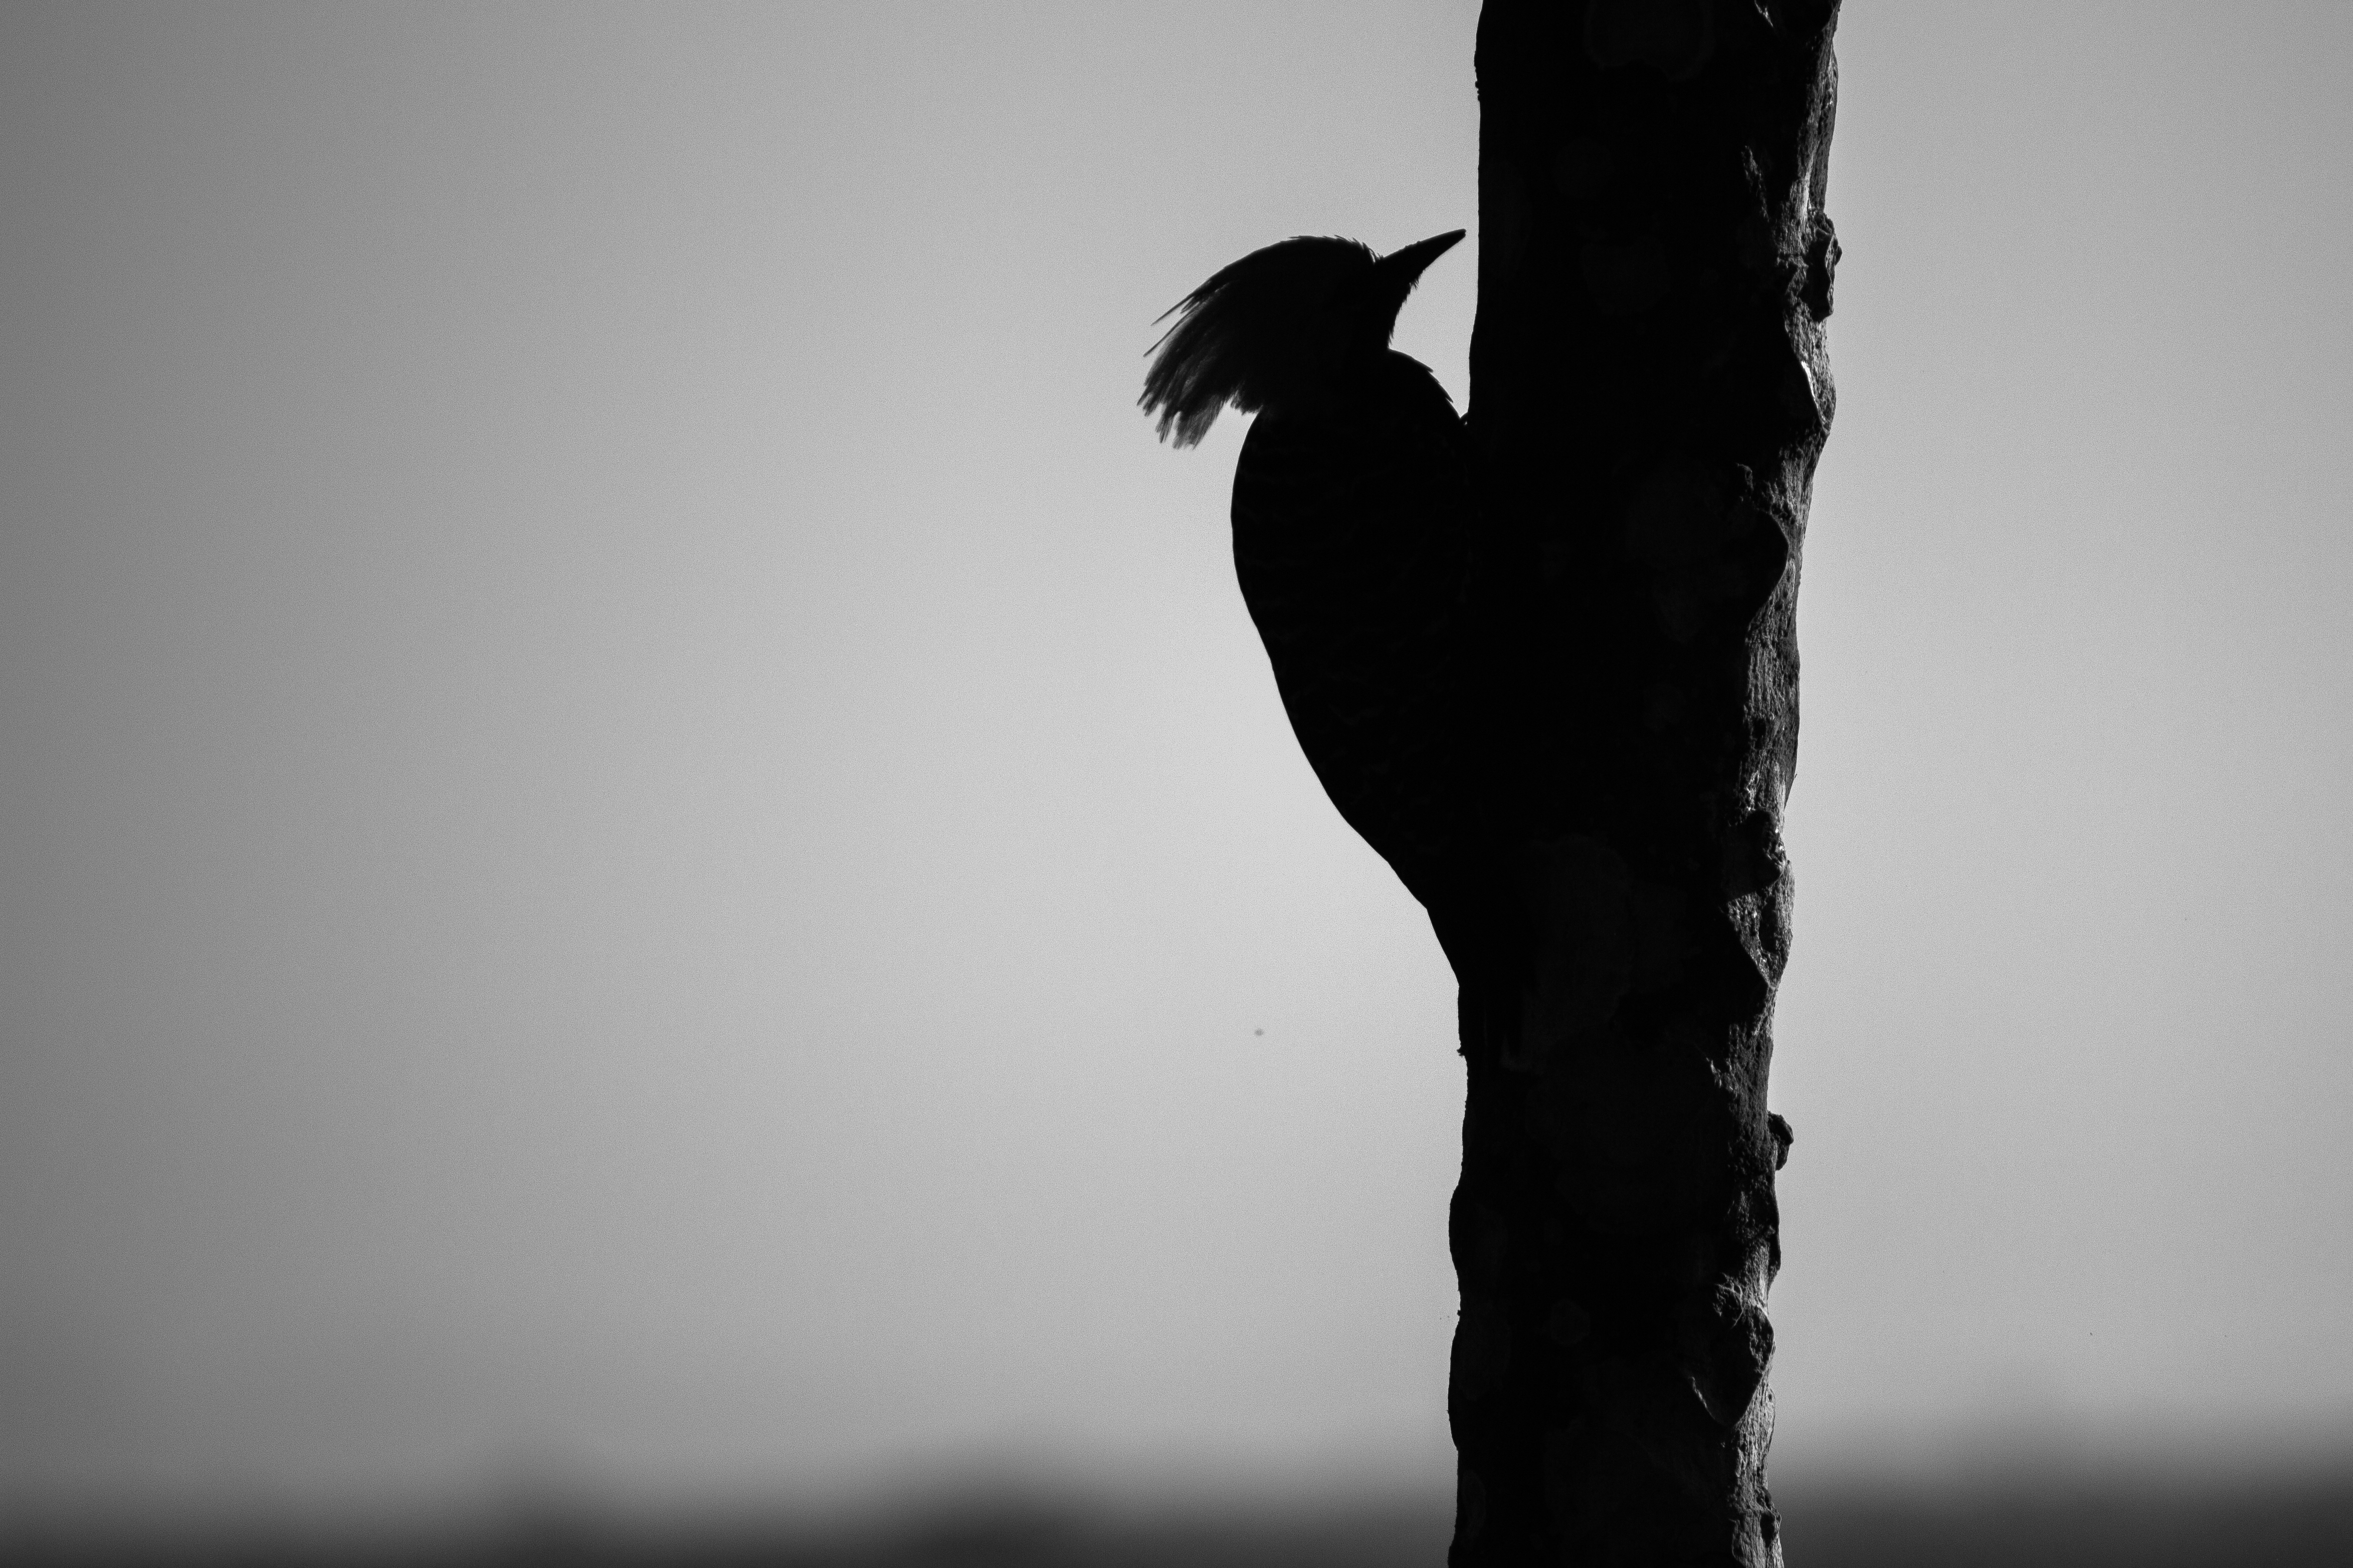 140289 download wallpaper Woodpecker, Bird, Bw, Chb, Silhouette screensavers and pictures for free